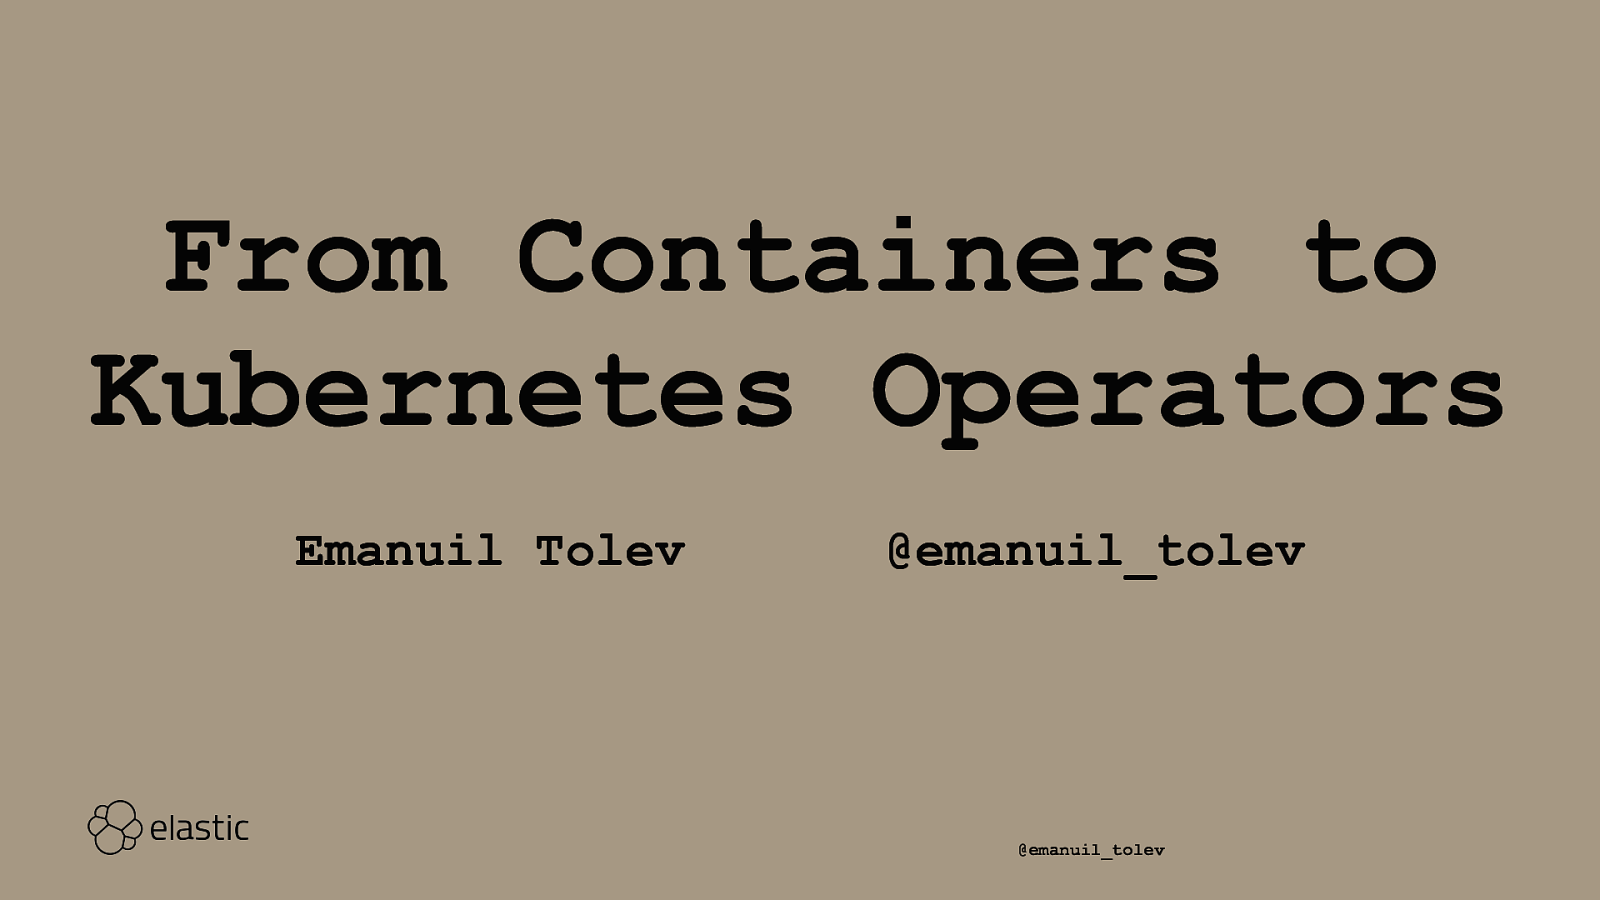 From Containers to Kubernetes Operators